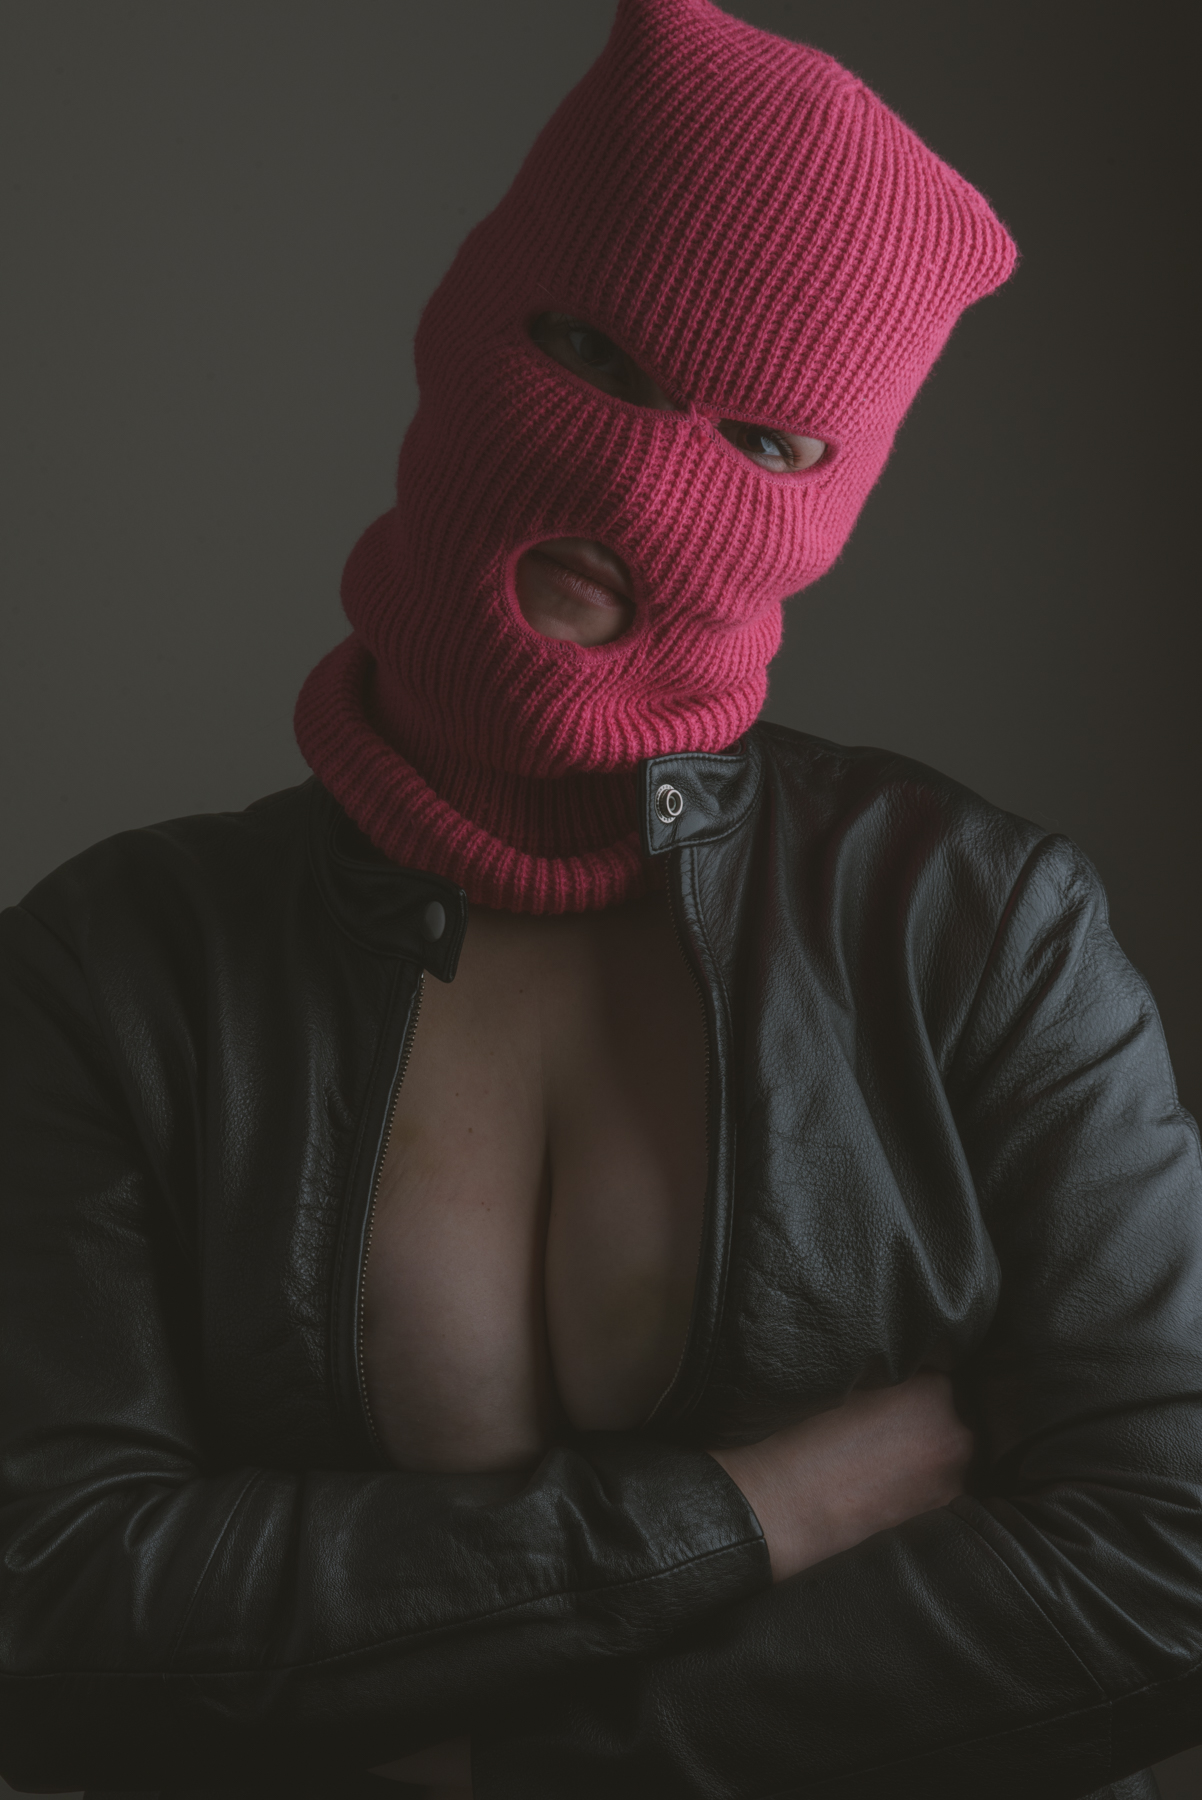 a portrait of a model wearing only a black leather jacket and a pink ski mask crossing her arms under her chest.